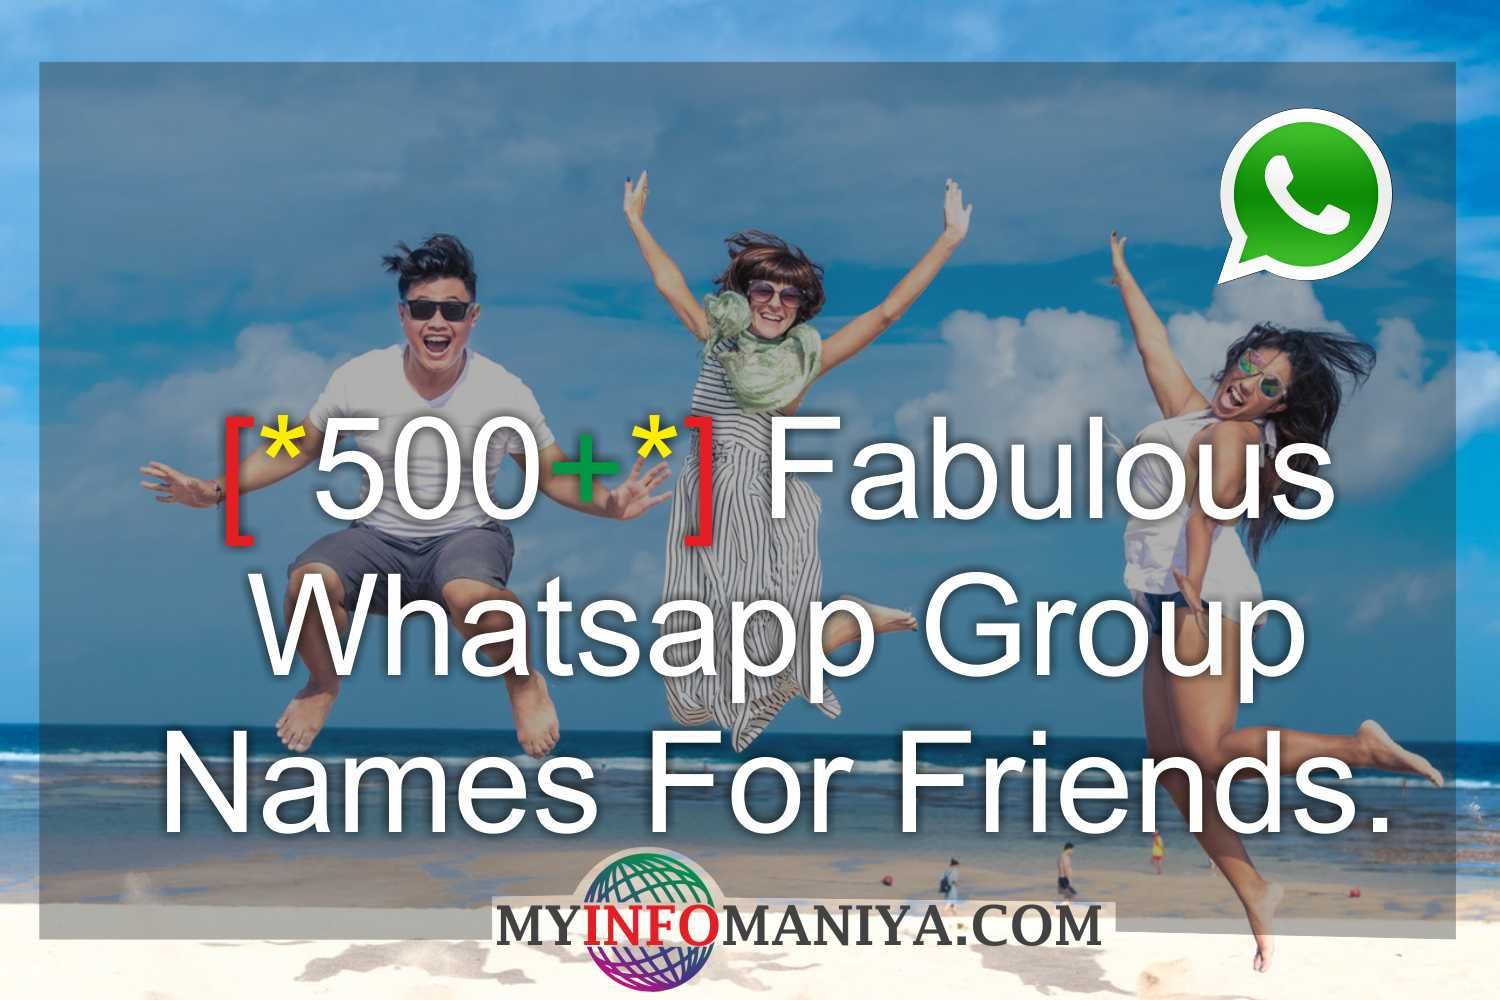 Best Whatsapp Group Names For Friends Funny Whatsapp Group Names